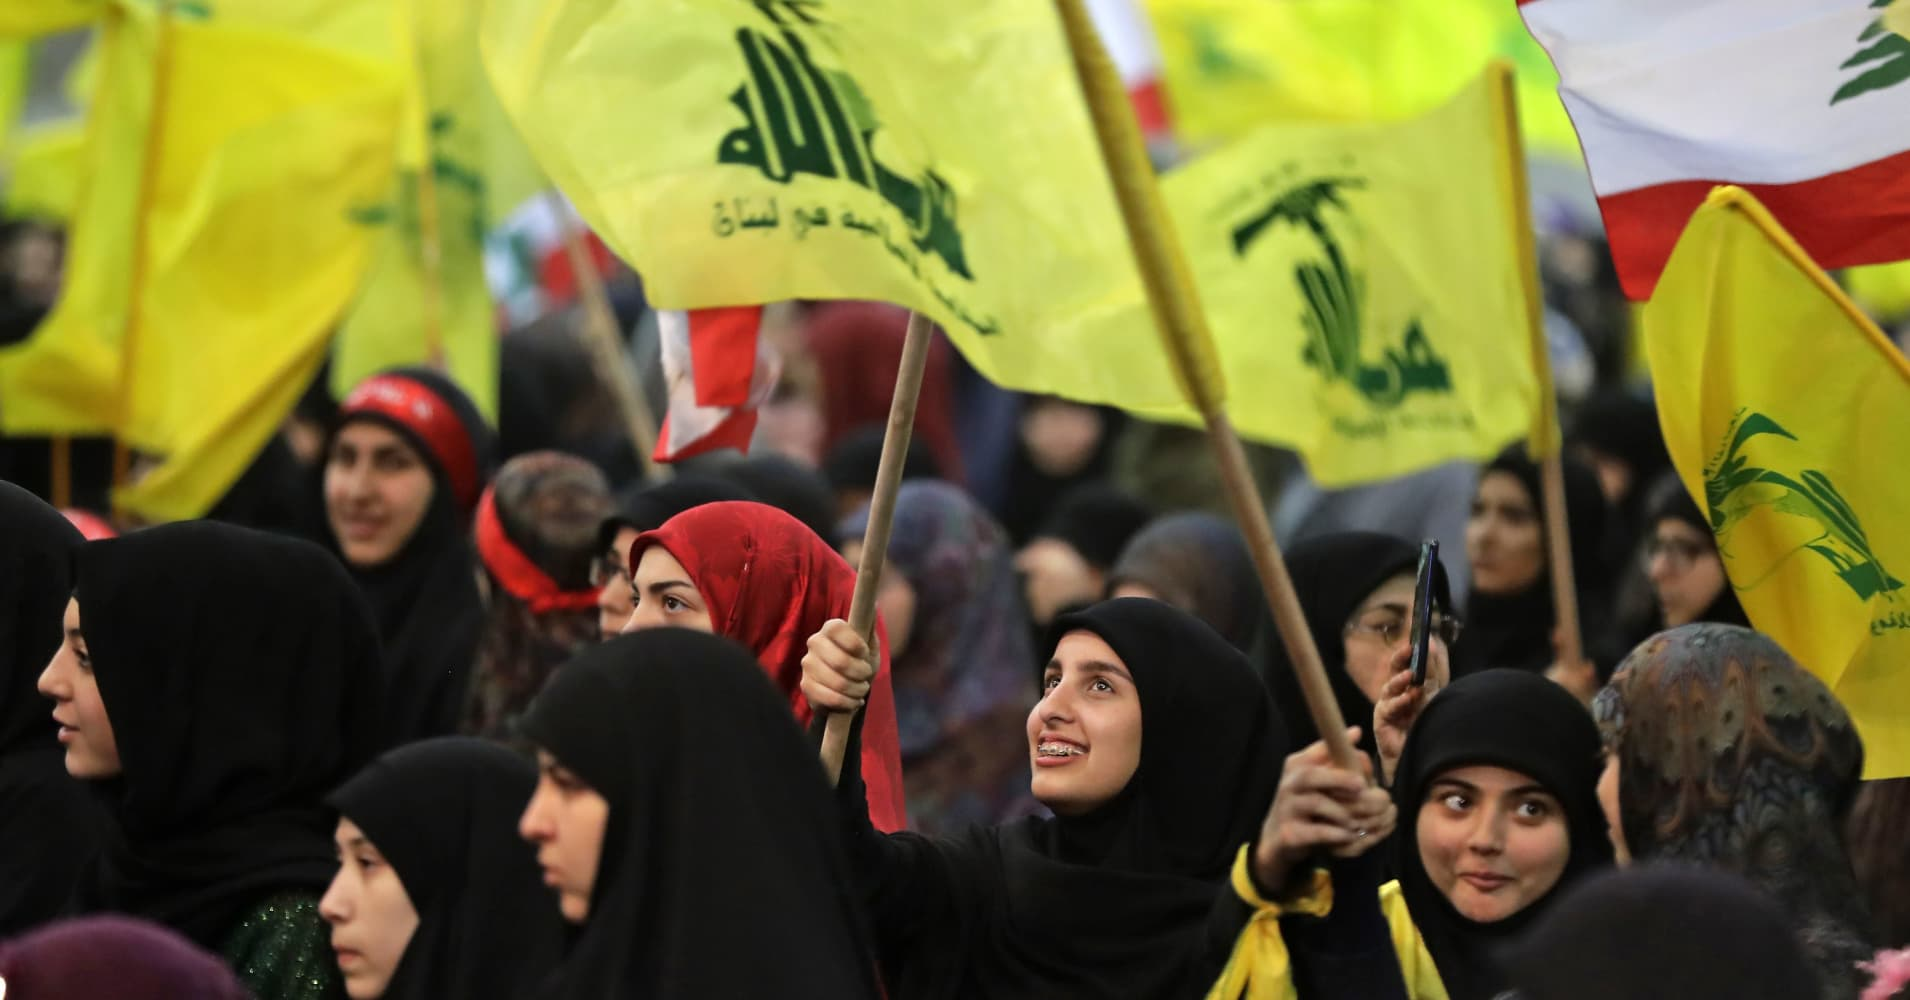 Lebanese defense minister says US policy on Hezbollah will not pay off